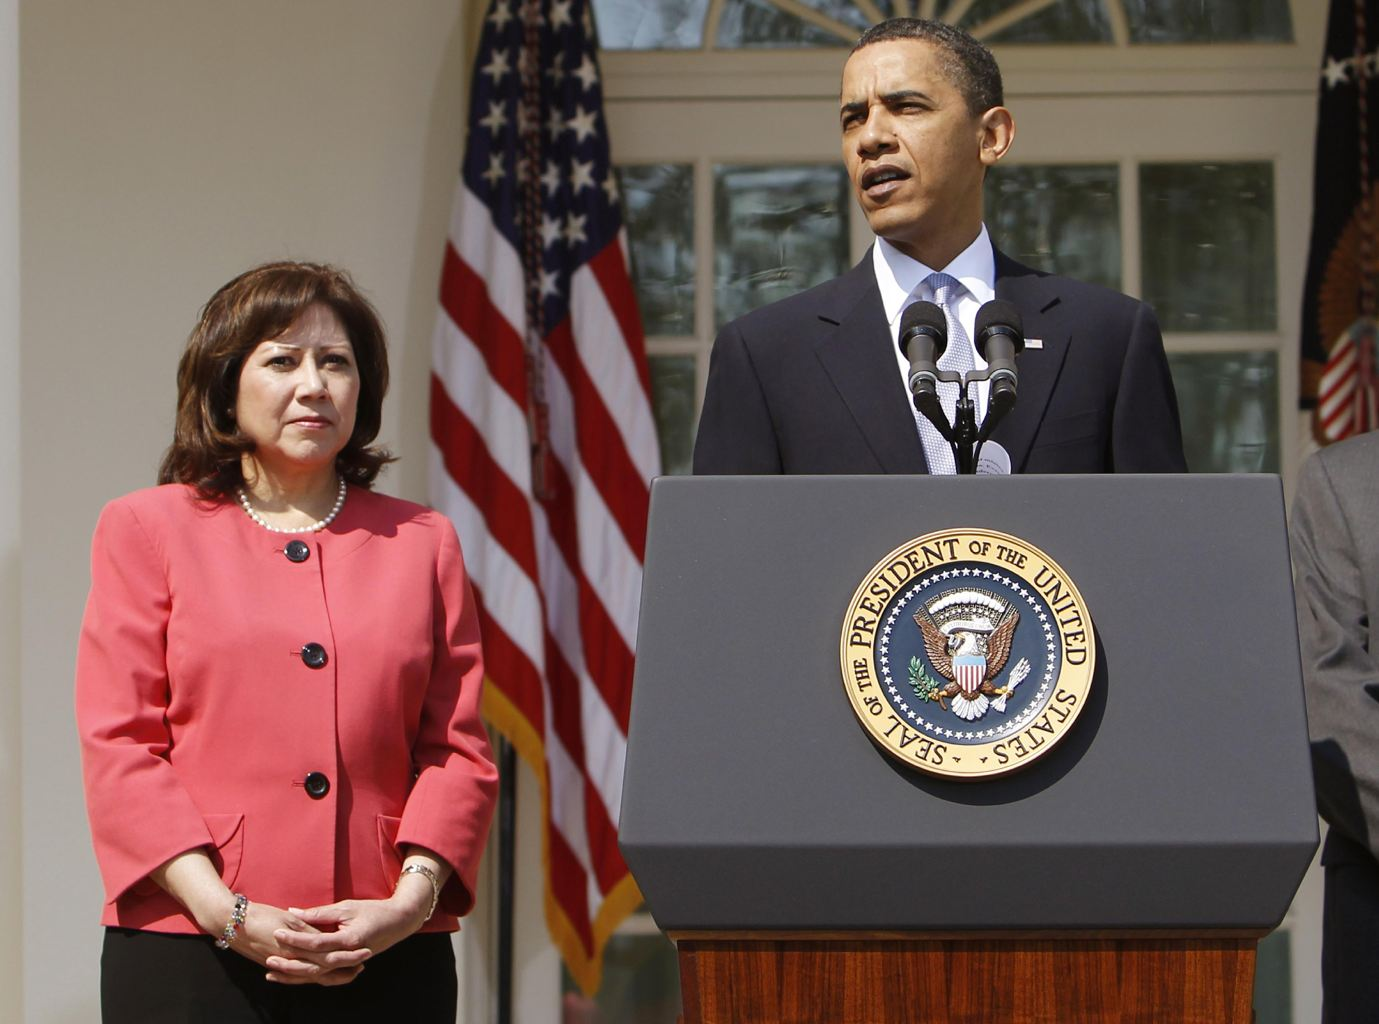 This April 15, 2010 file photo shows Labor Secretary Hilda Solis standing with President Barack Obama in the Rose Garden of the White House in Washington. Solis is telling colleagues she is leaving the Obama administration.  (AP Photo/Charles Dharapak, File)